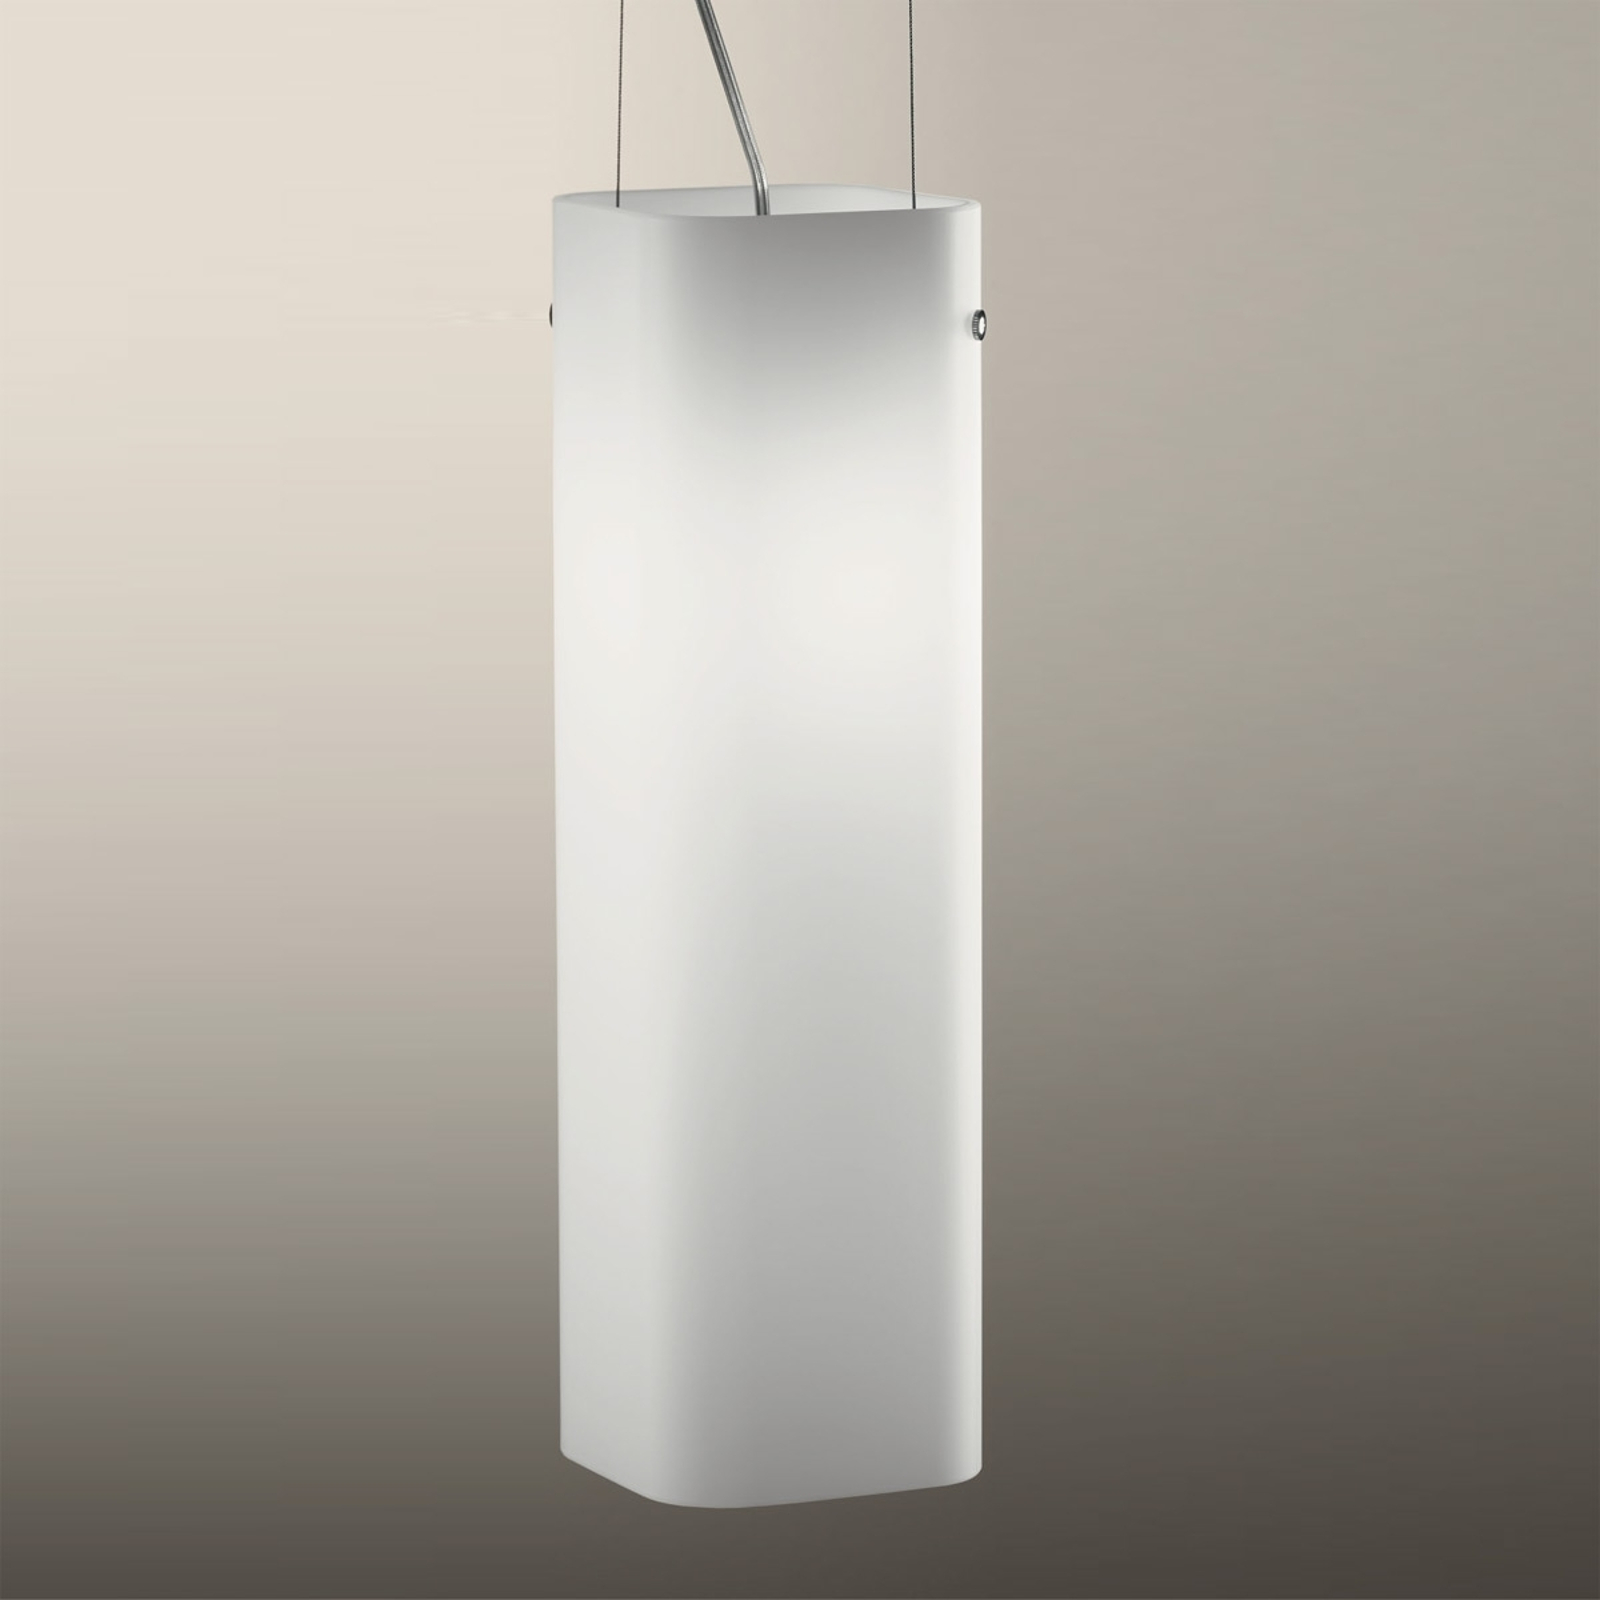 Illuminerende 1-lichts hanglamp CARRE